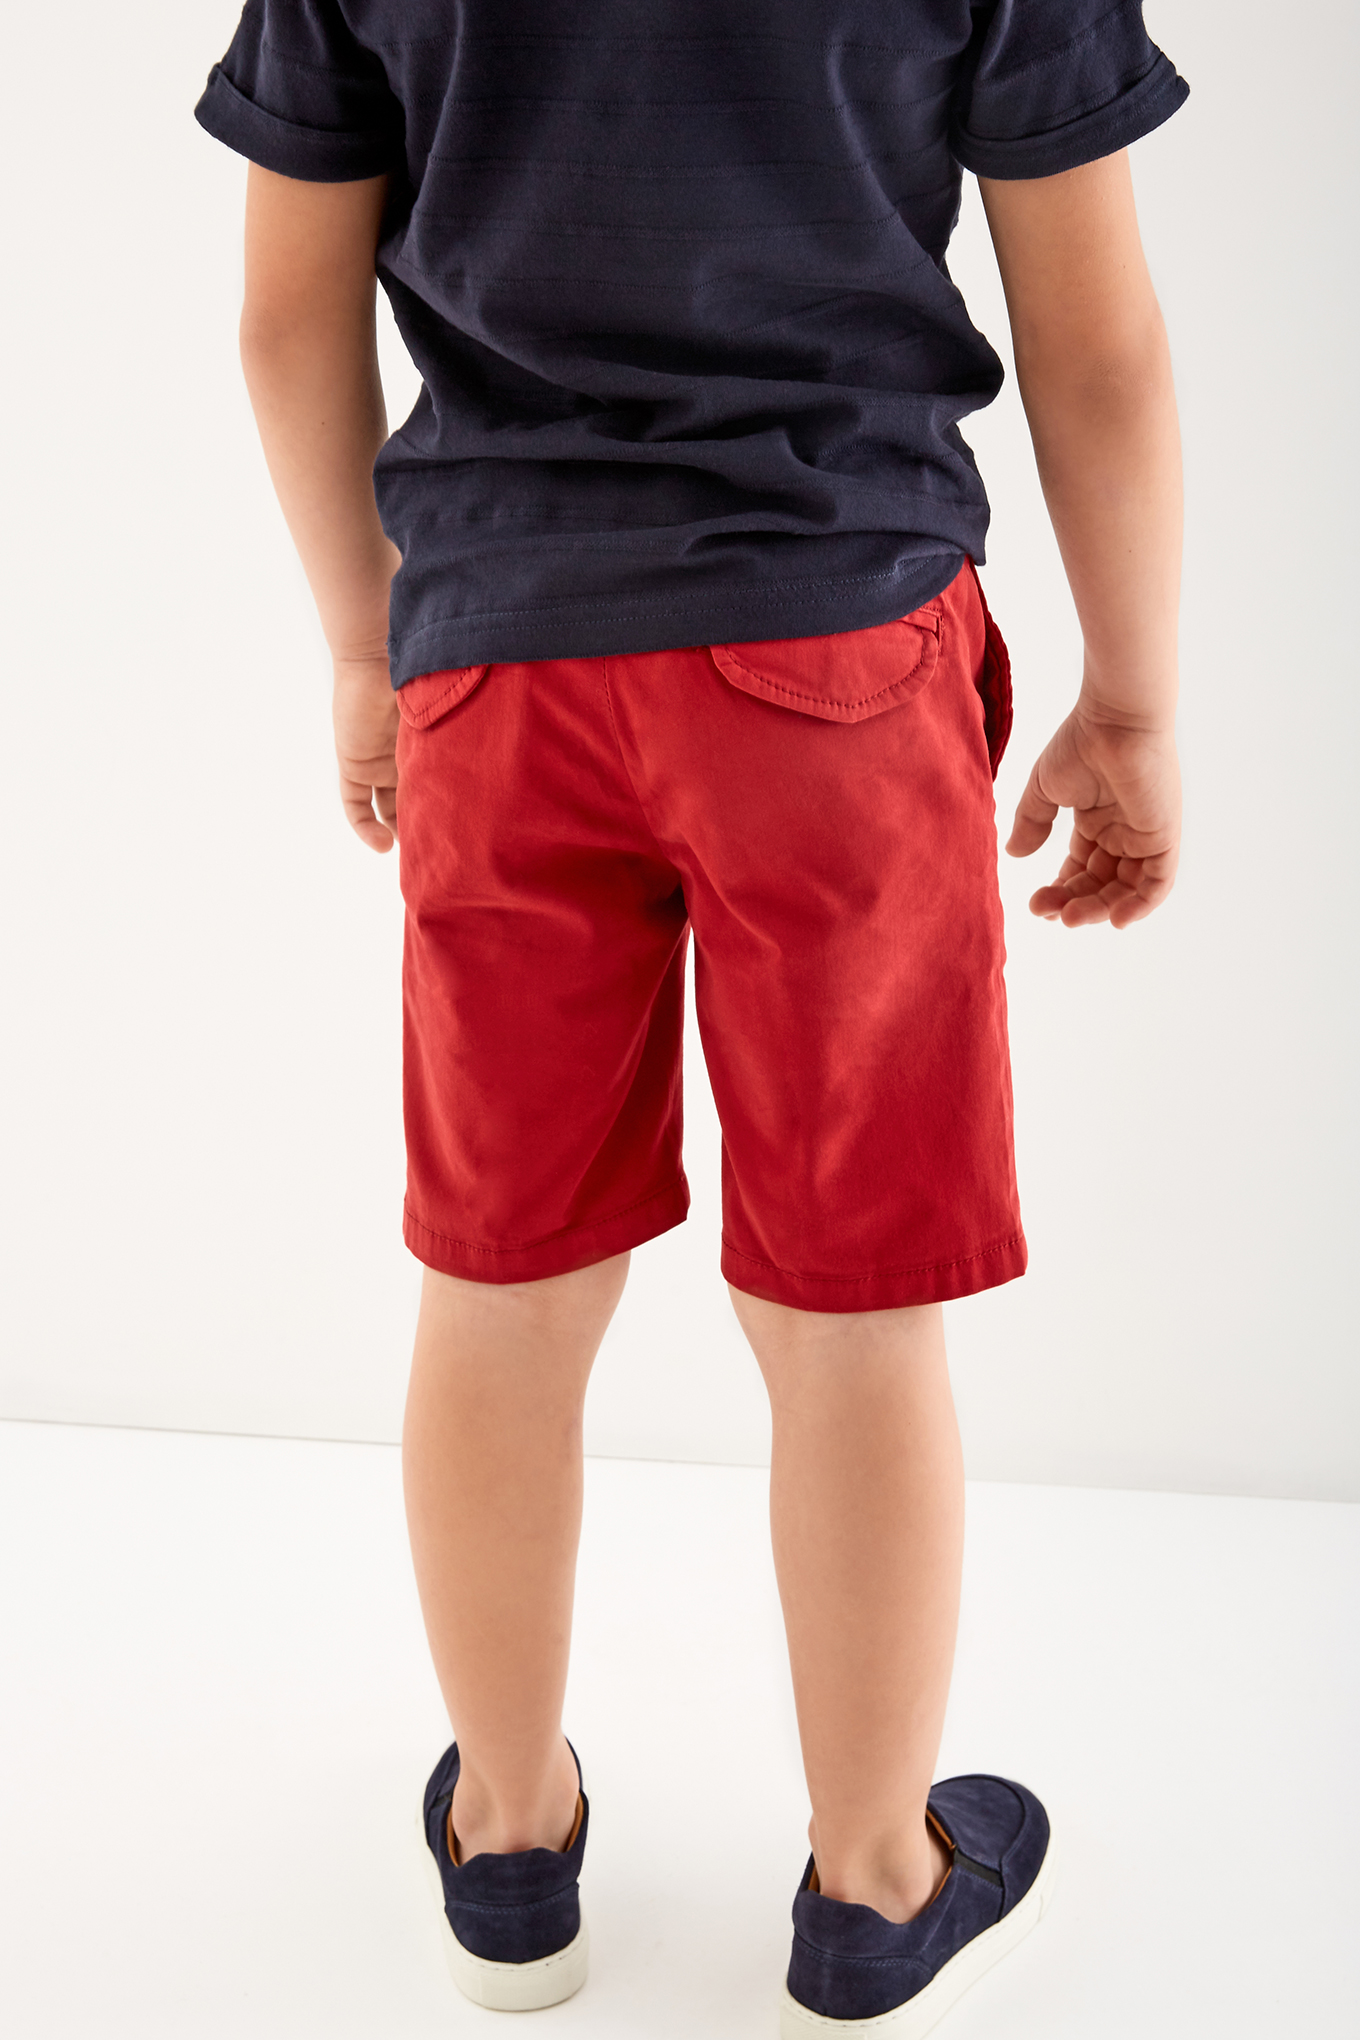 Bermuda Red Casual Boy